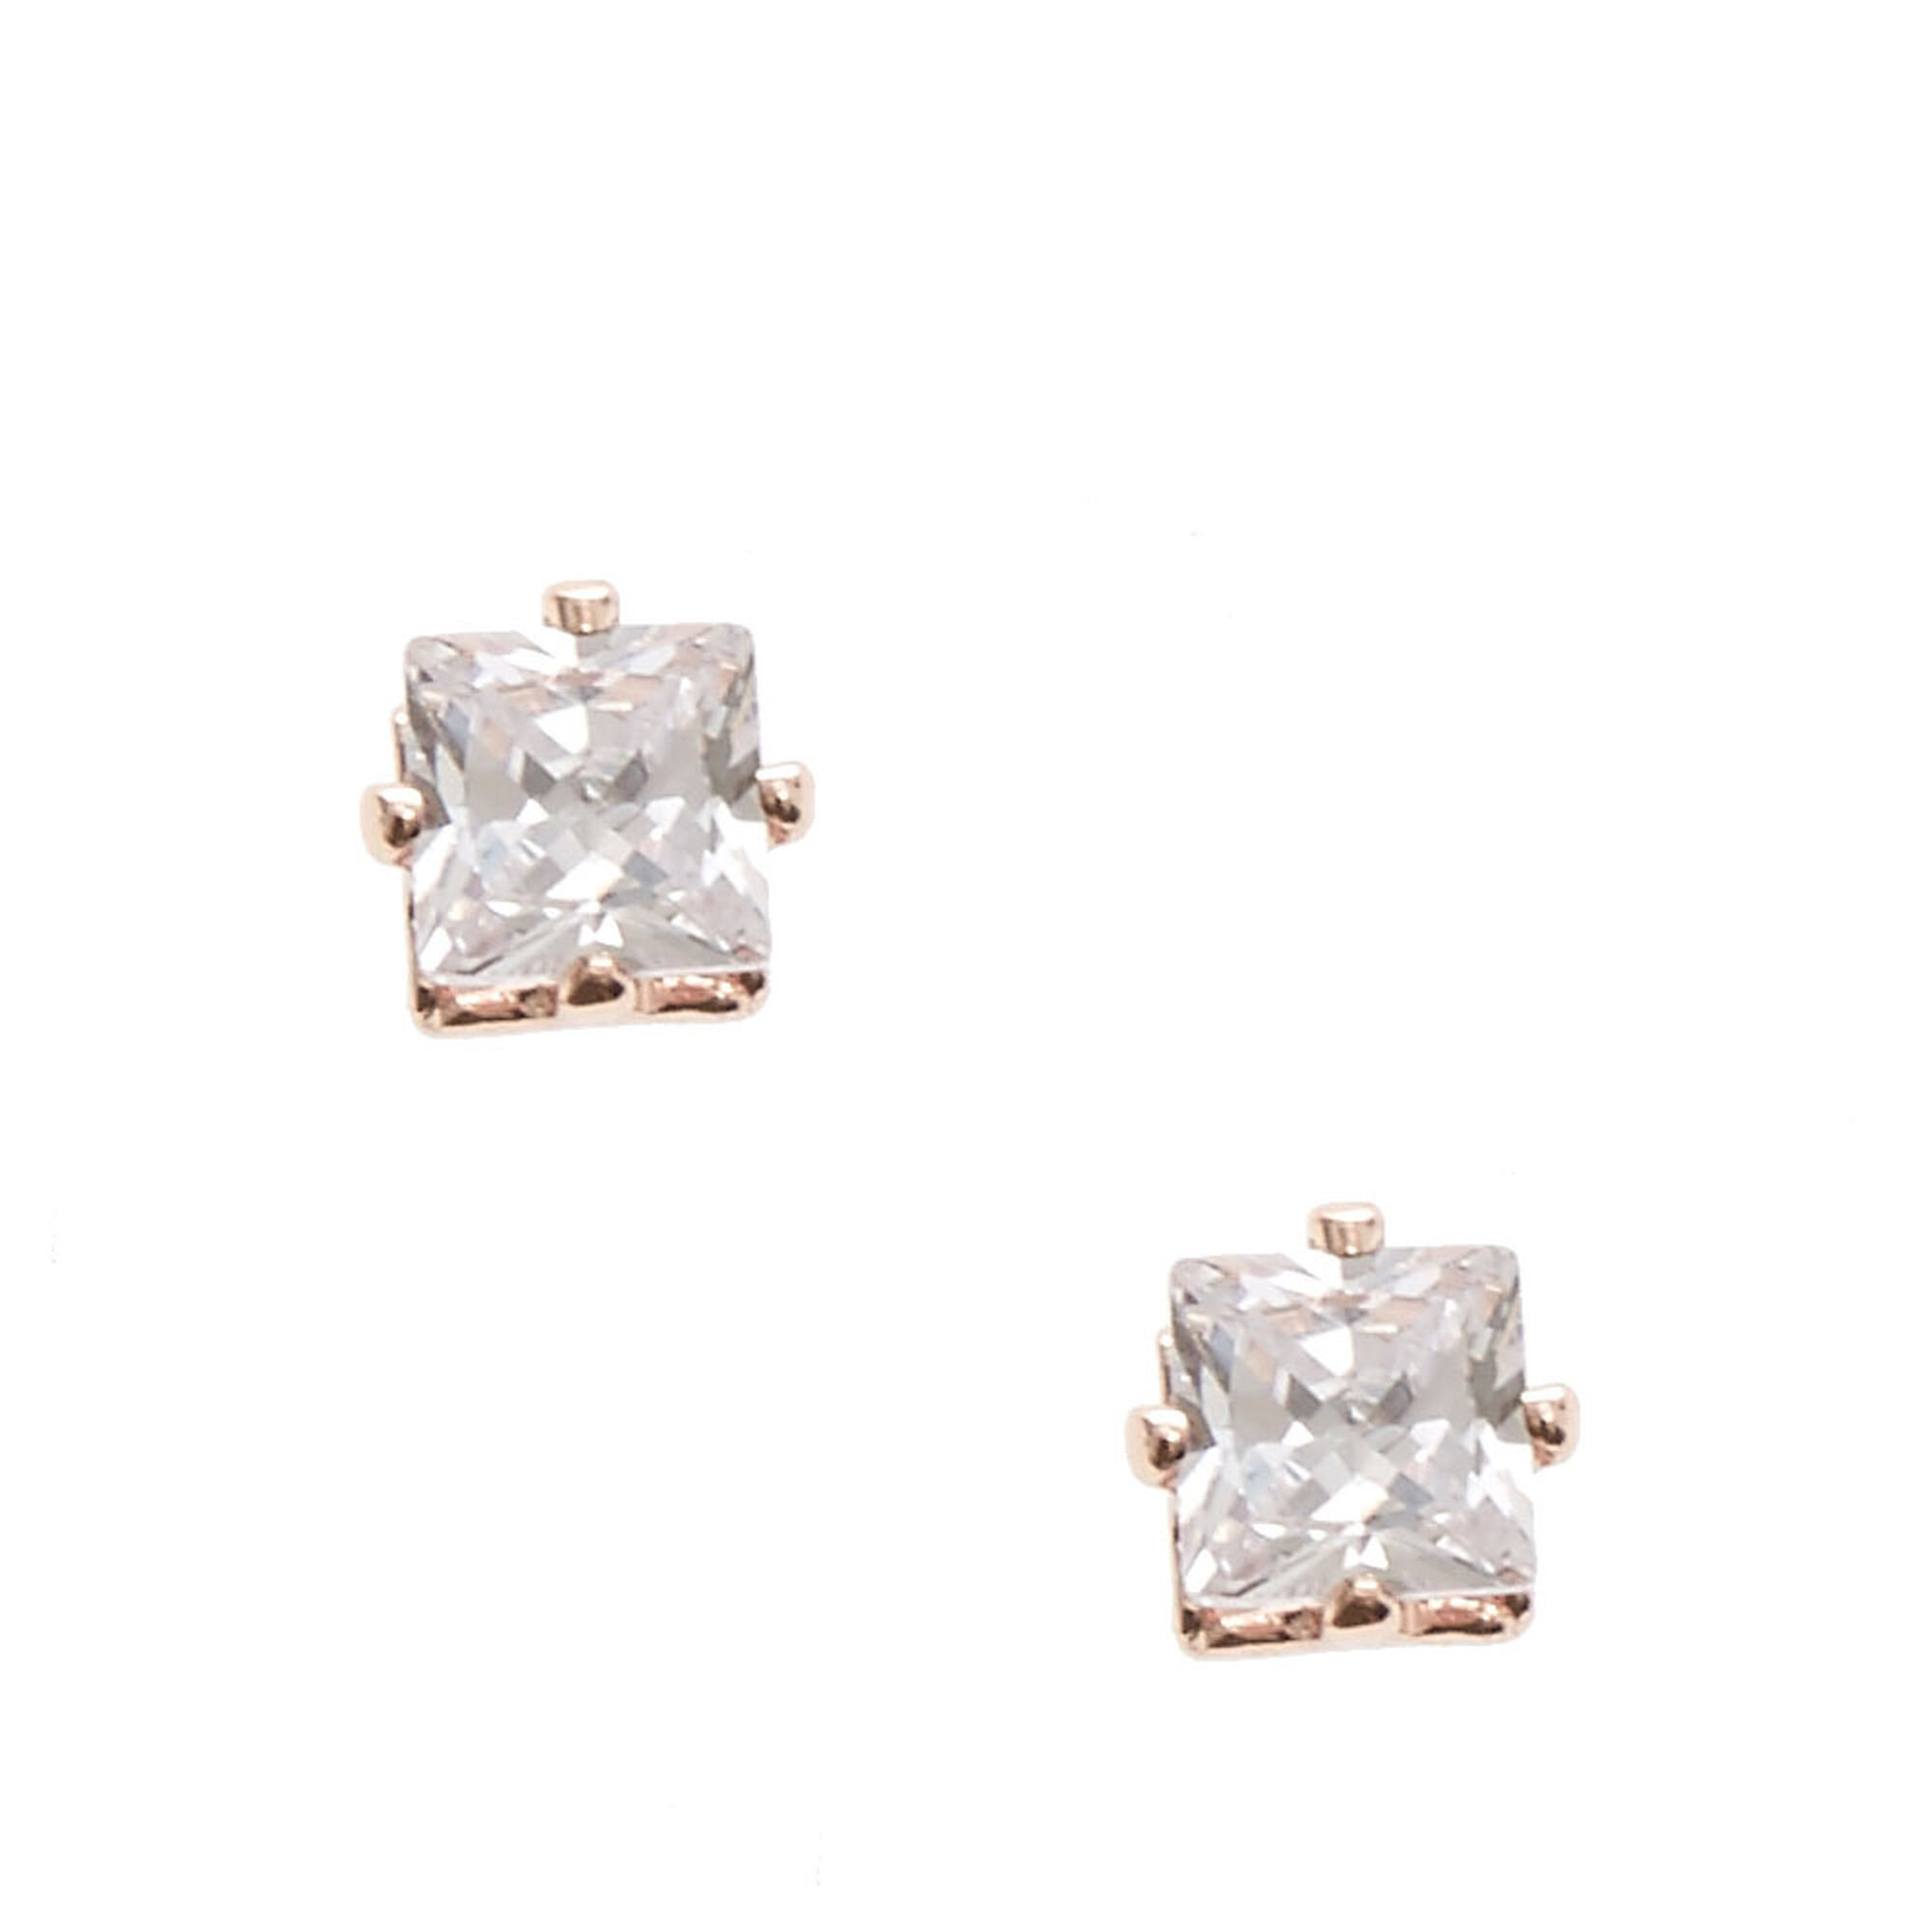 rsp gold com online main round zirconia ibb buyibb lewis johnlewis at stud cubic earrings john pdp